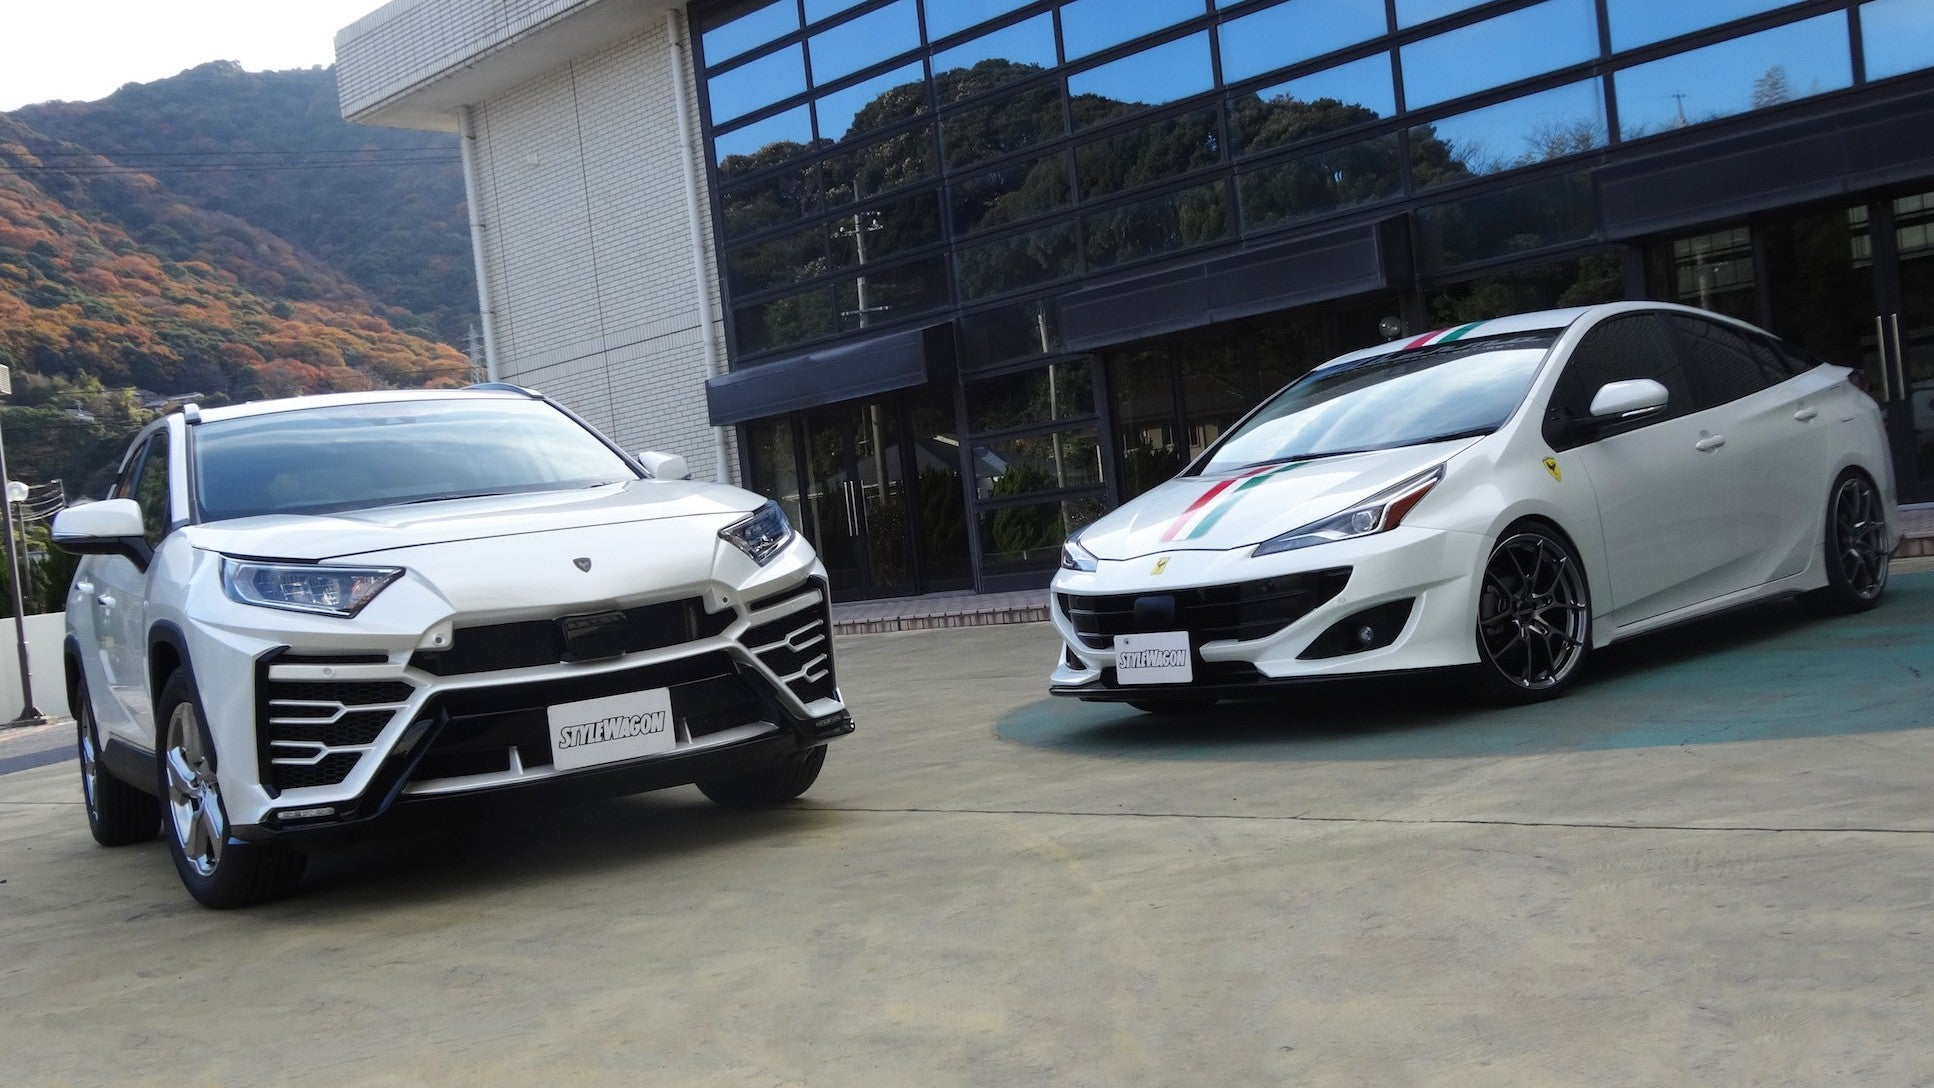 The 2020 Toyota Prius Actually Looks A Lot Better With This Fake Ferrari Bodykit